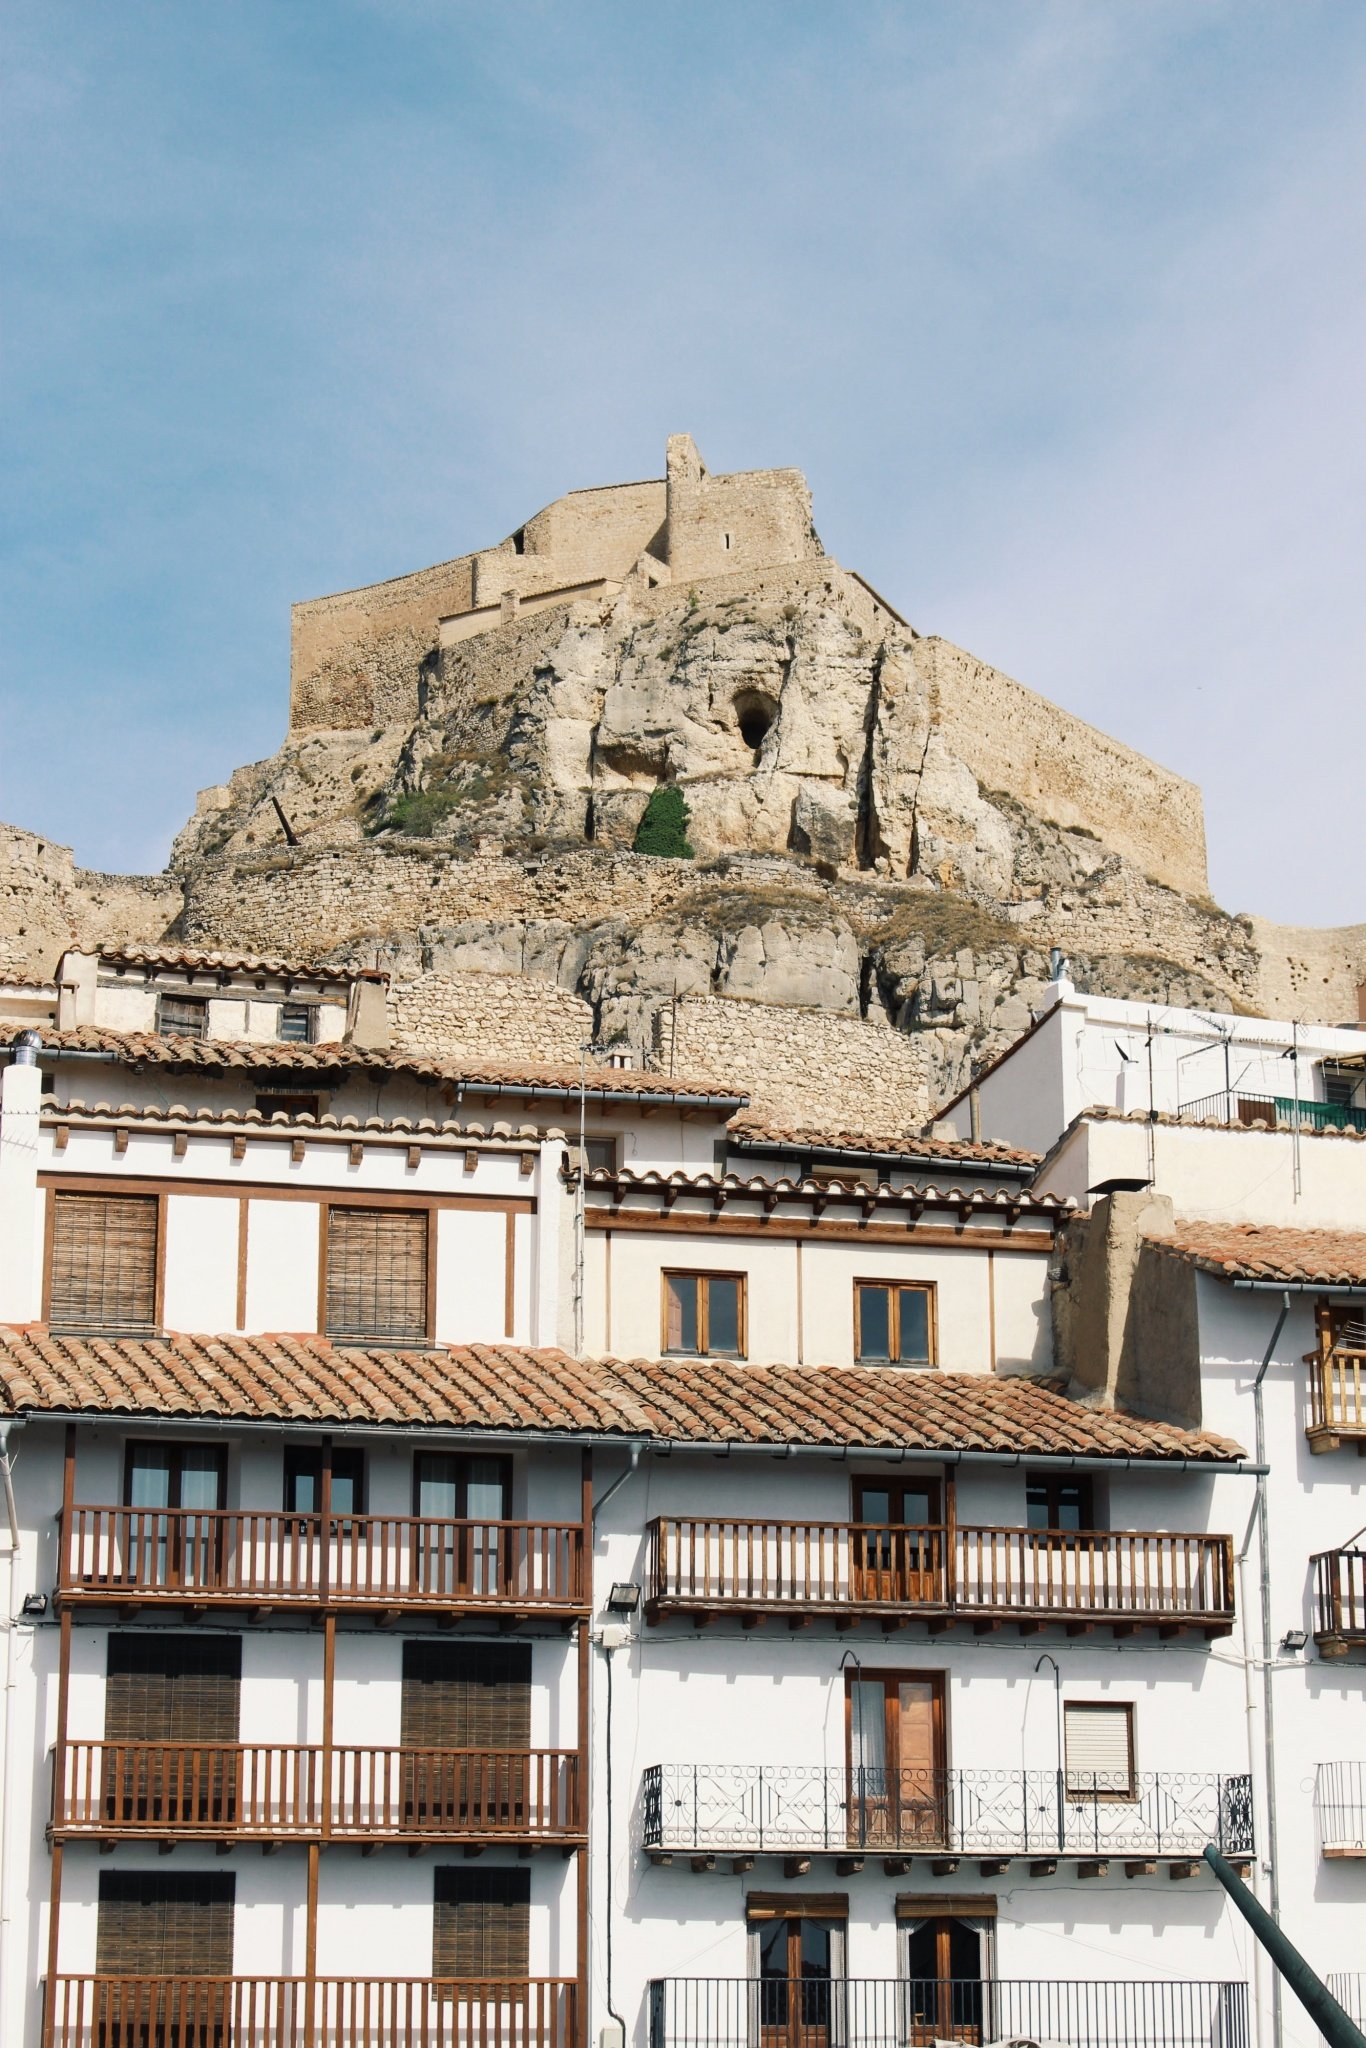 The Castle and the local white houses in Morella, Spain